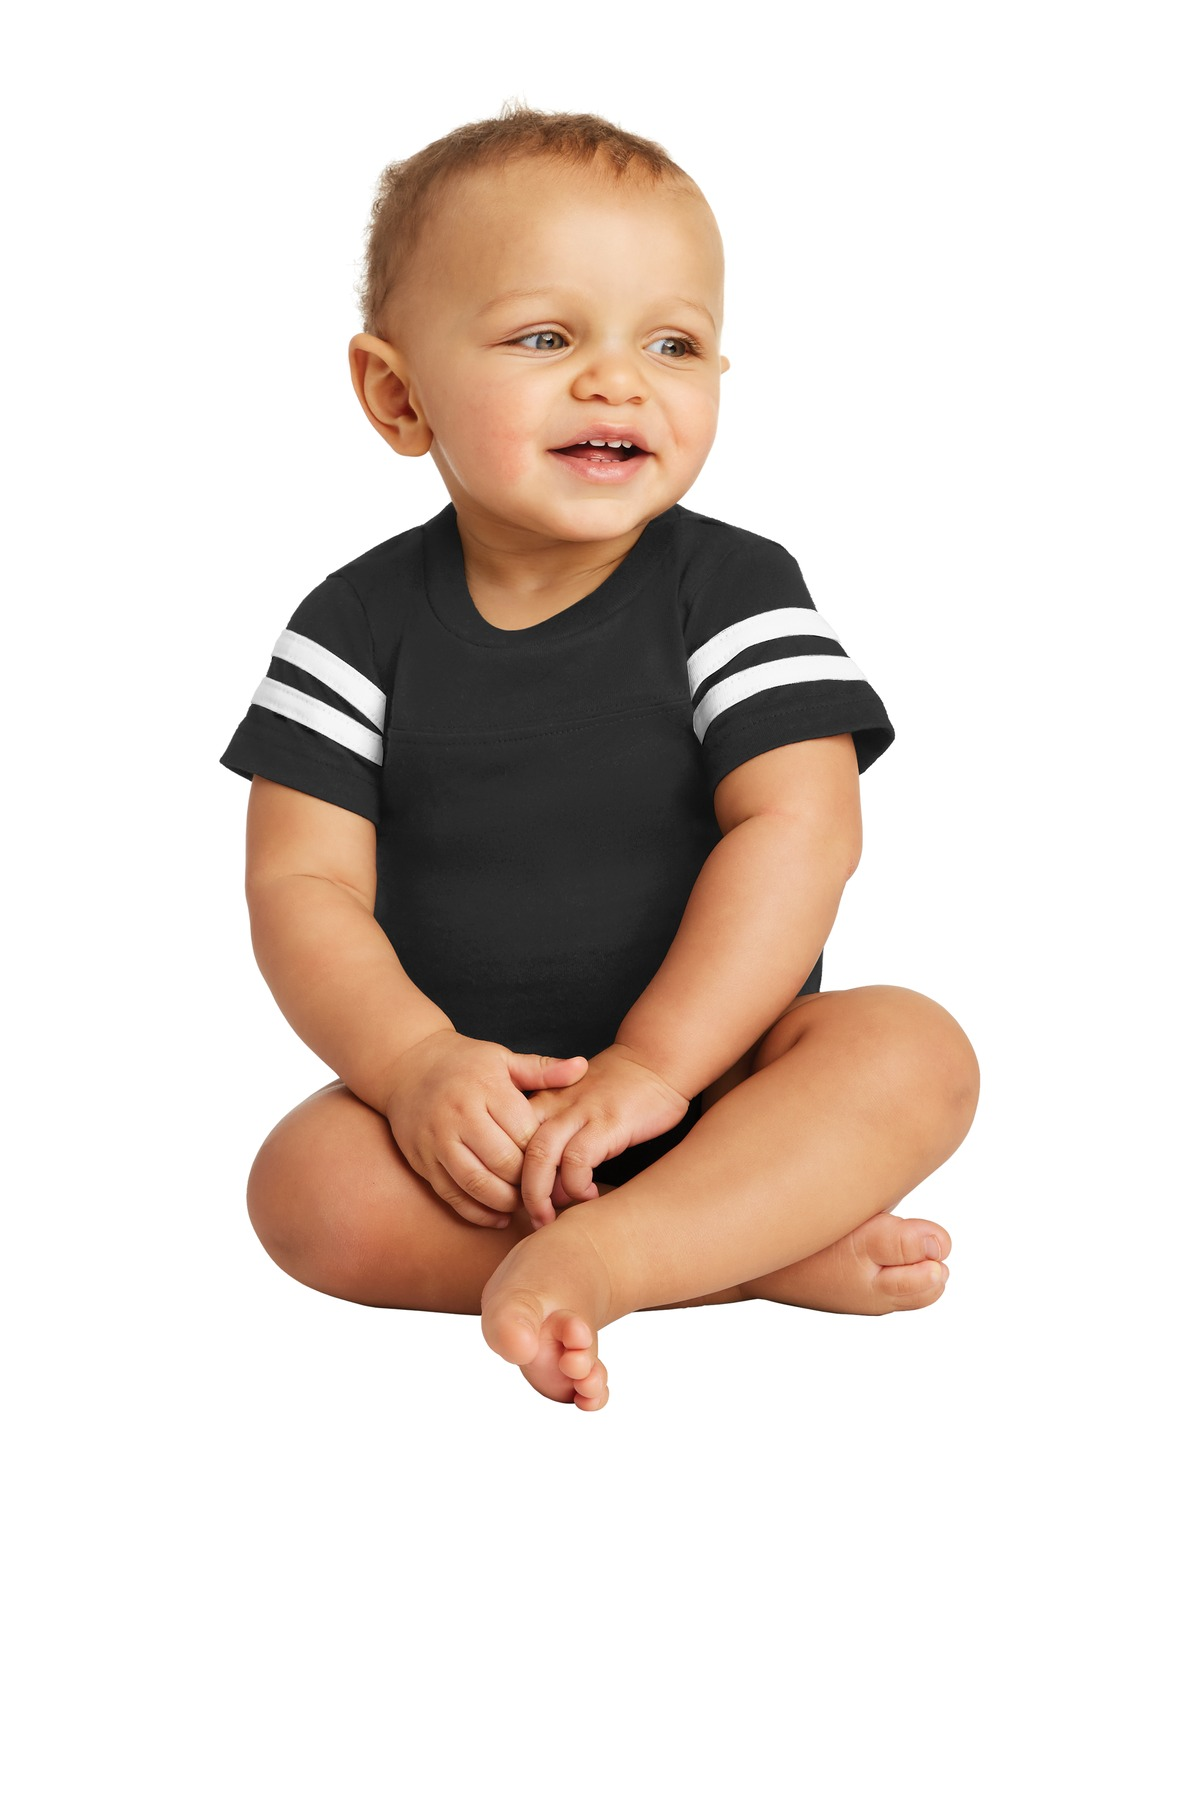 Rabbit Skins ™  Infant Football Fine Jersey Bodysuit. RS4437 - Black/ White